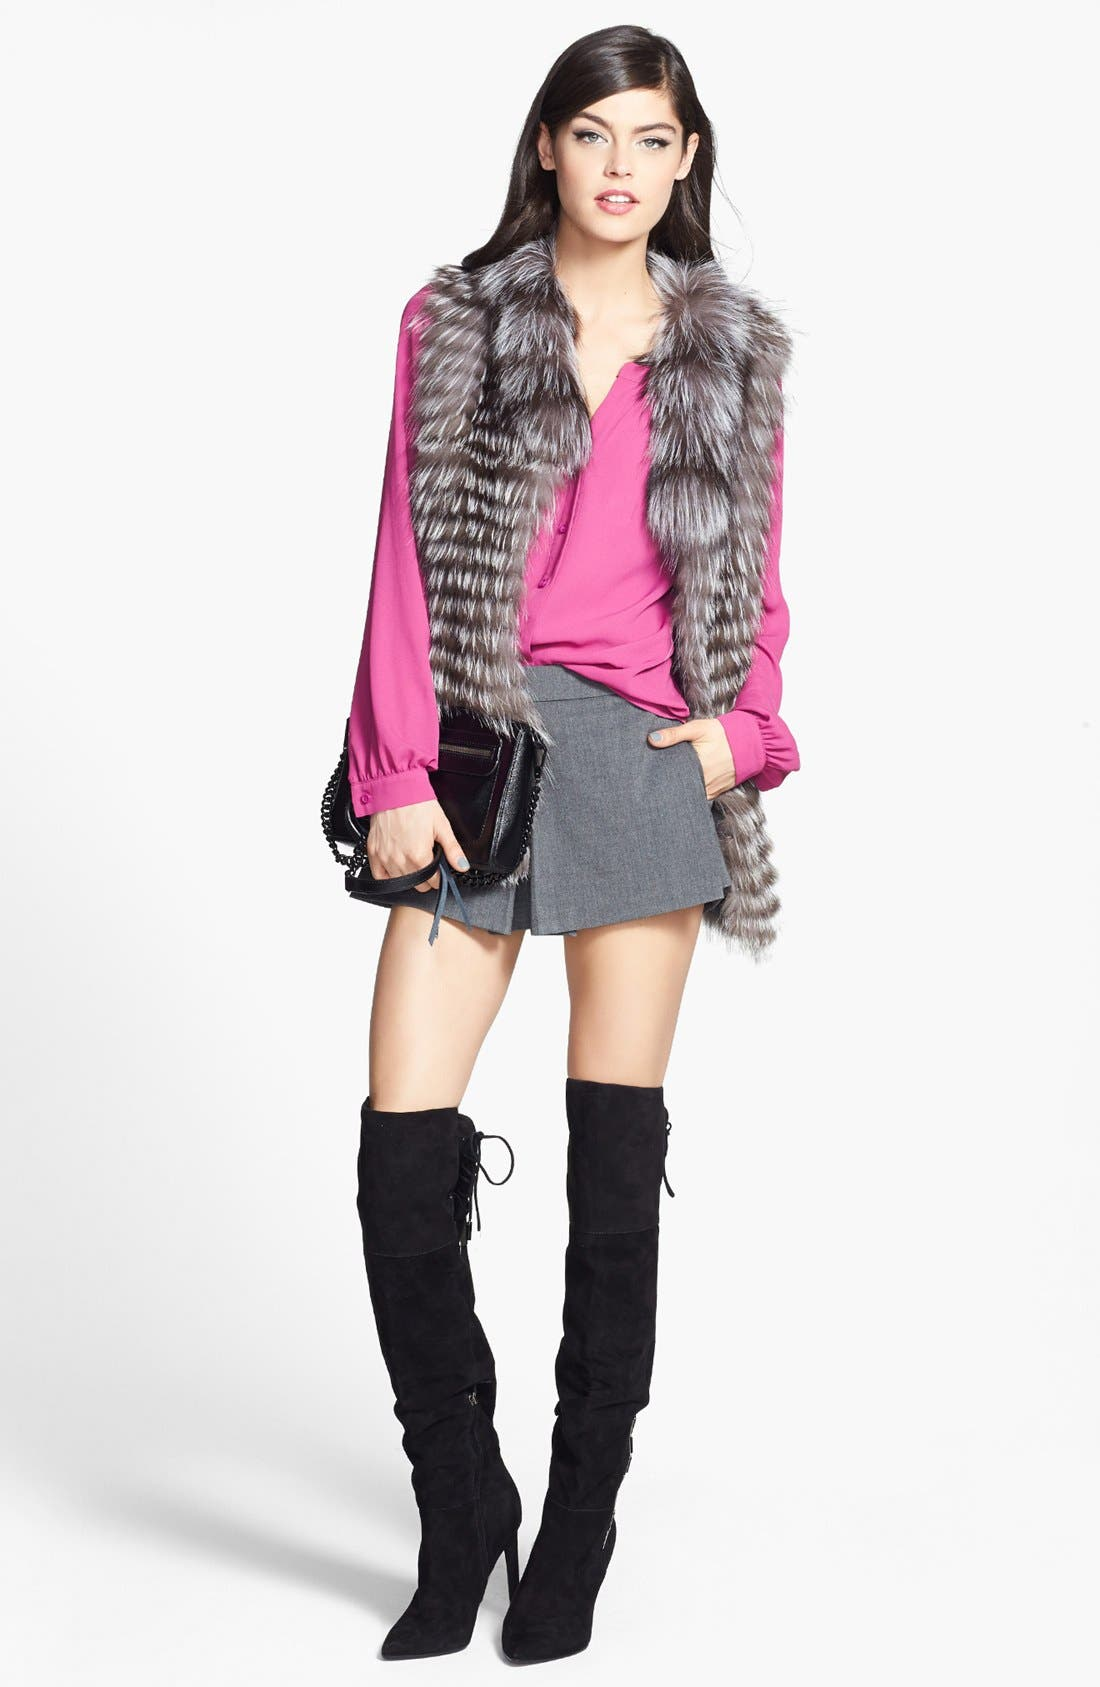 DOLCE VITA, 'Inara' Over the Knee Pointy Toe Suede Boot, Alternate thumbnail 6, color, 001